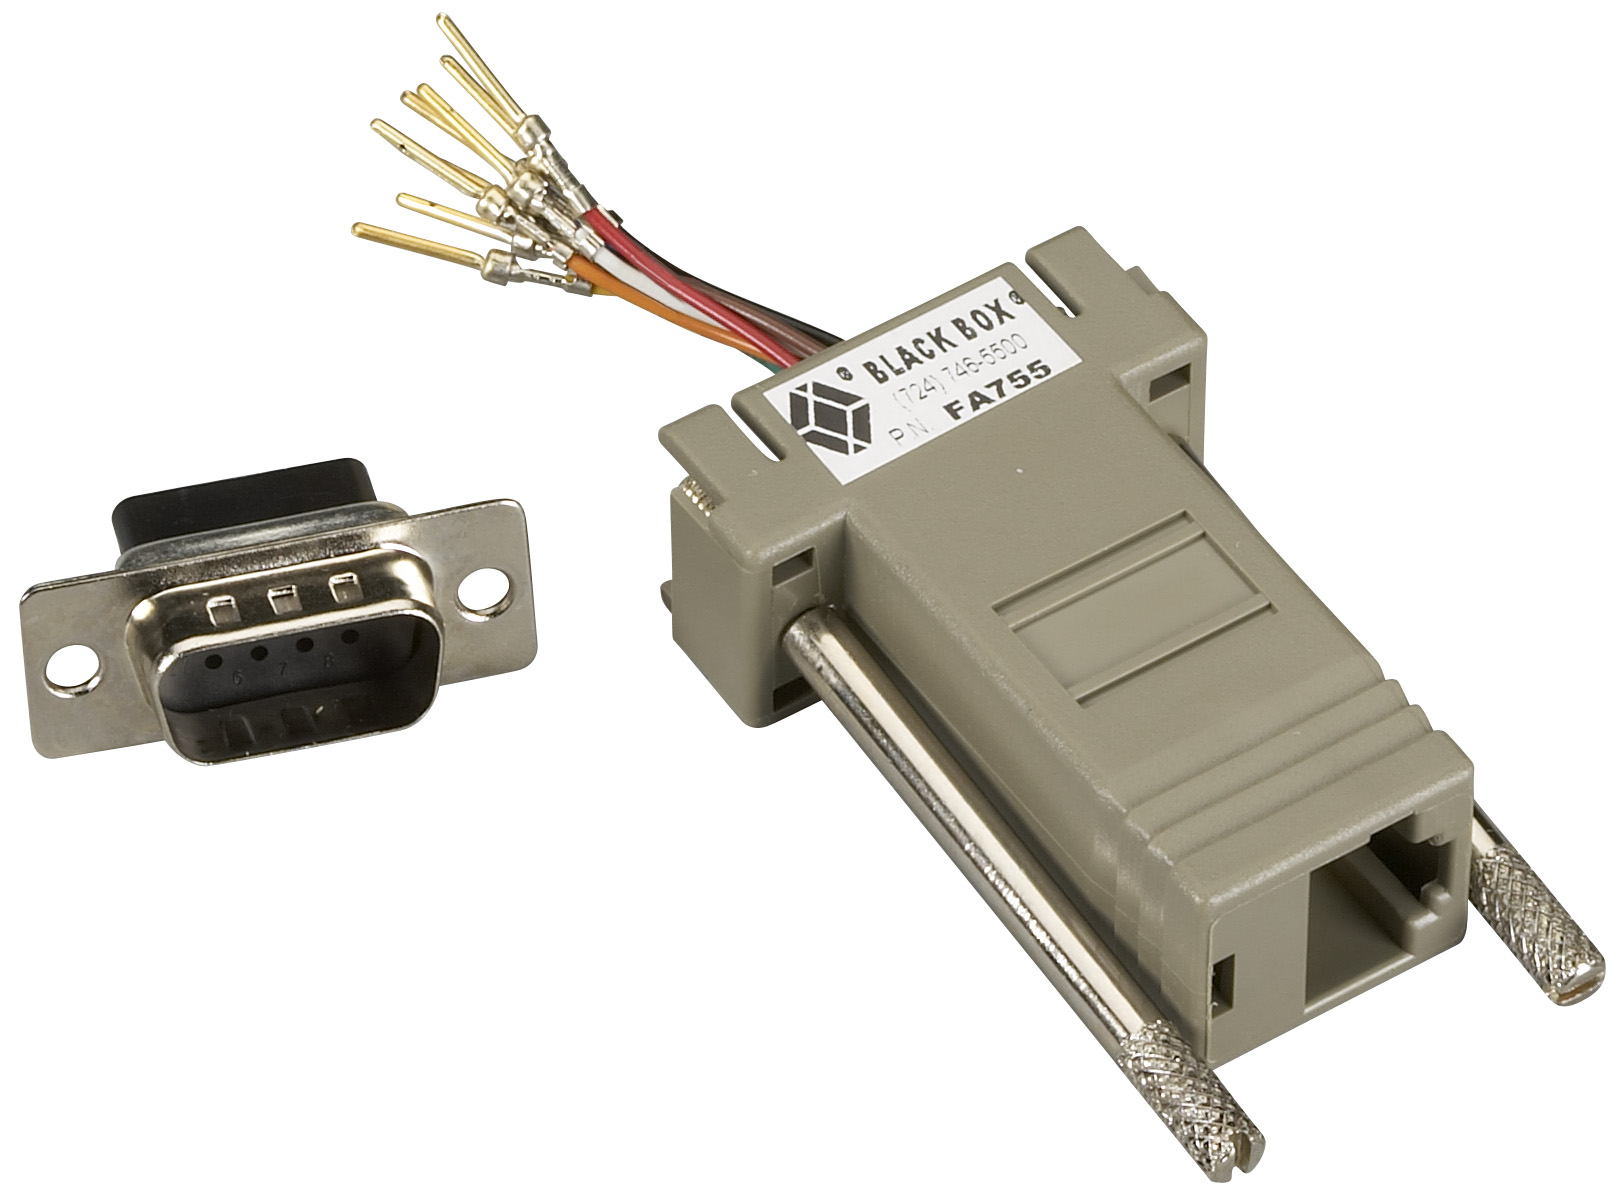 hight resolution of modular adapter kit db9 male to rj45 female 8 wire